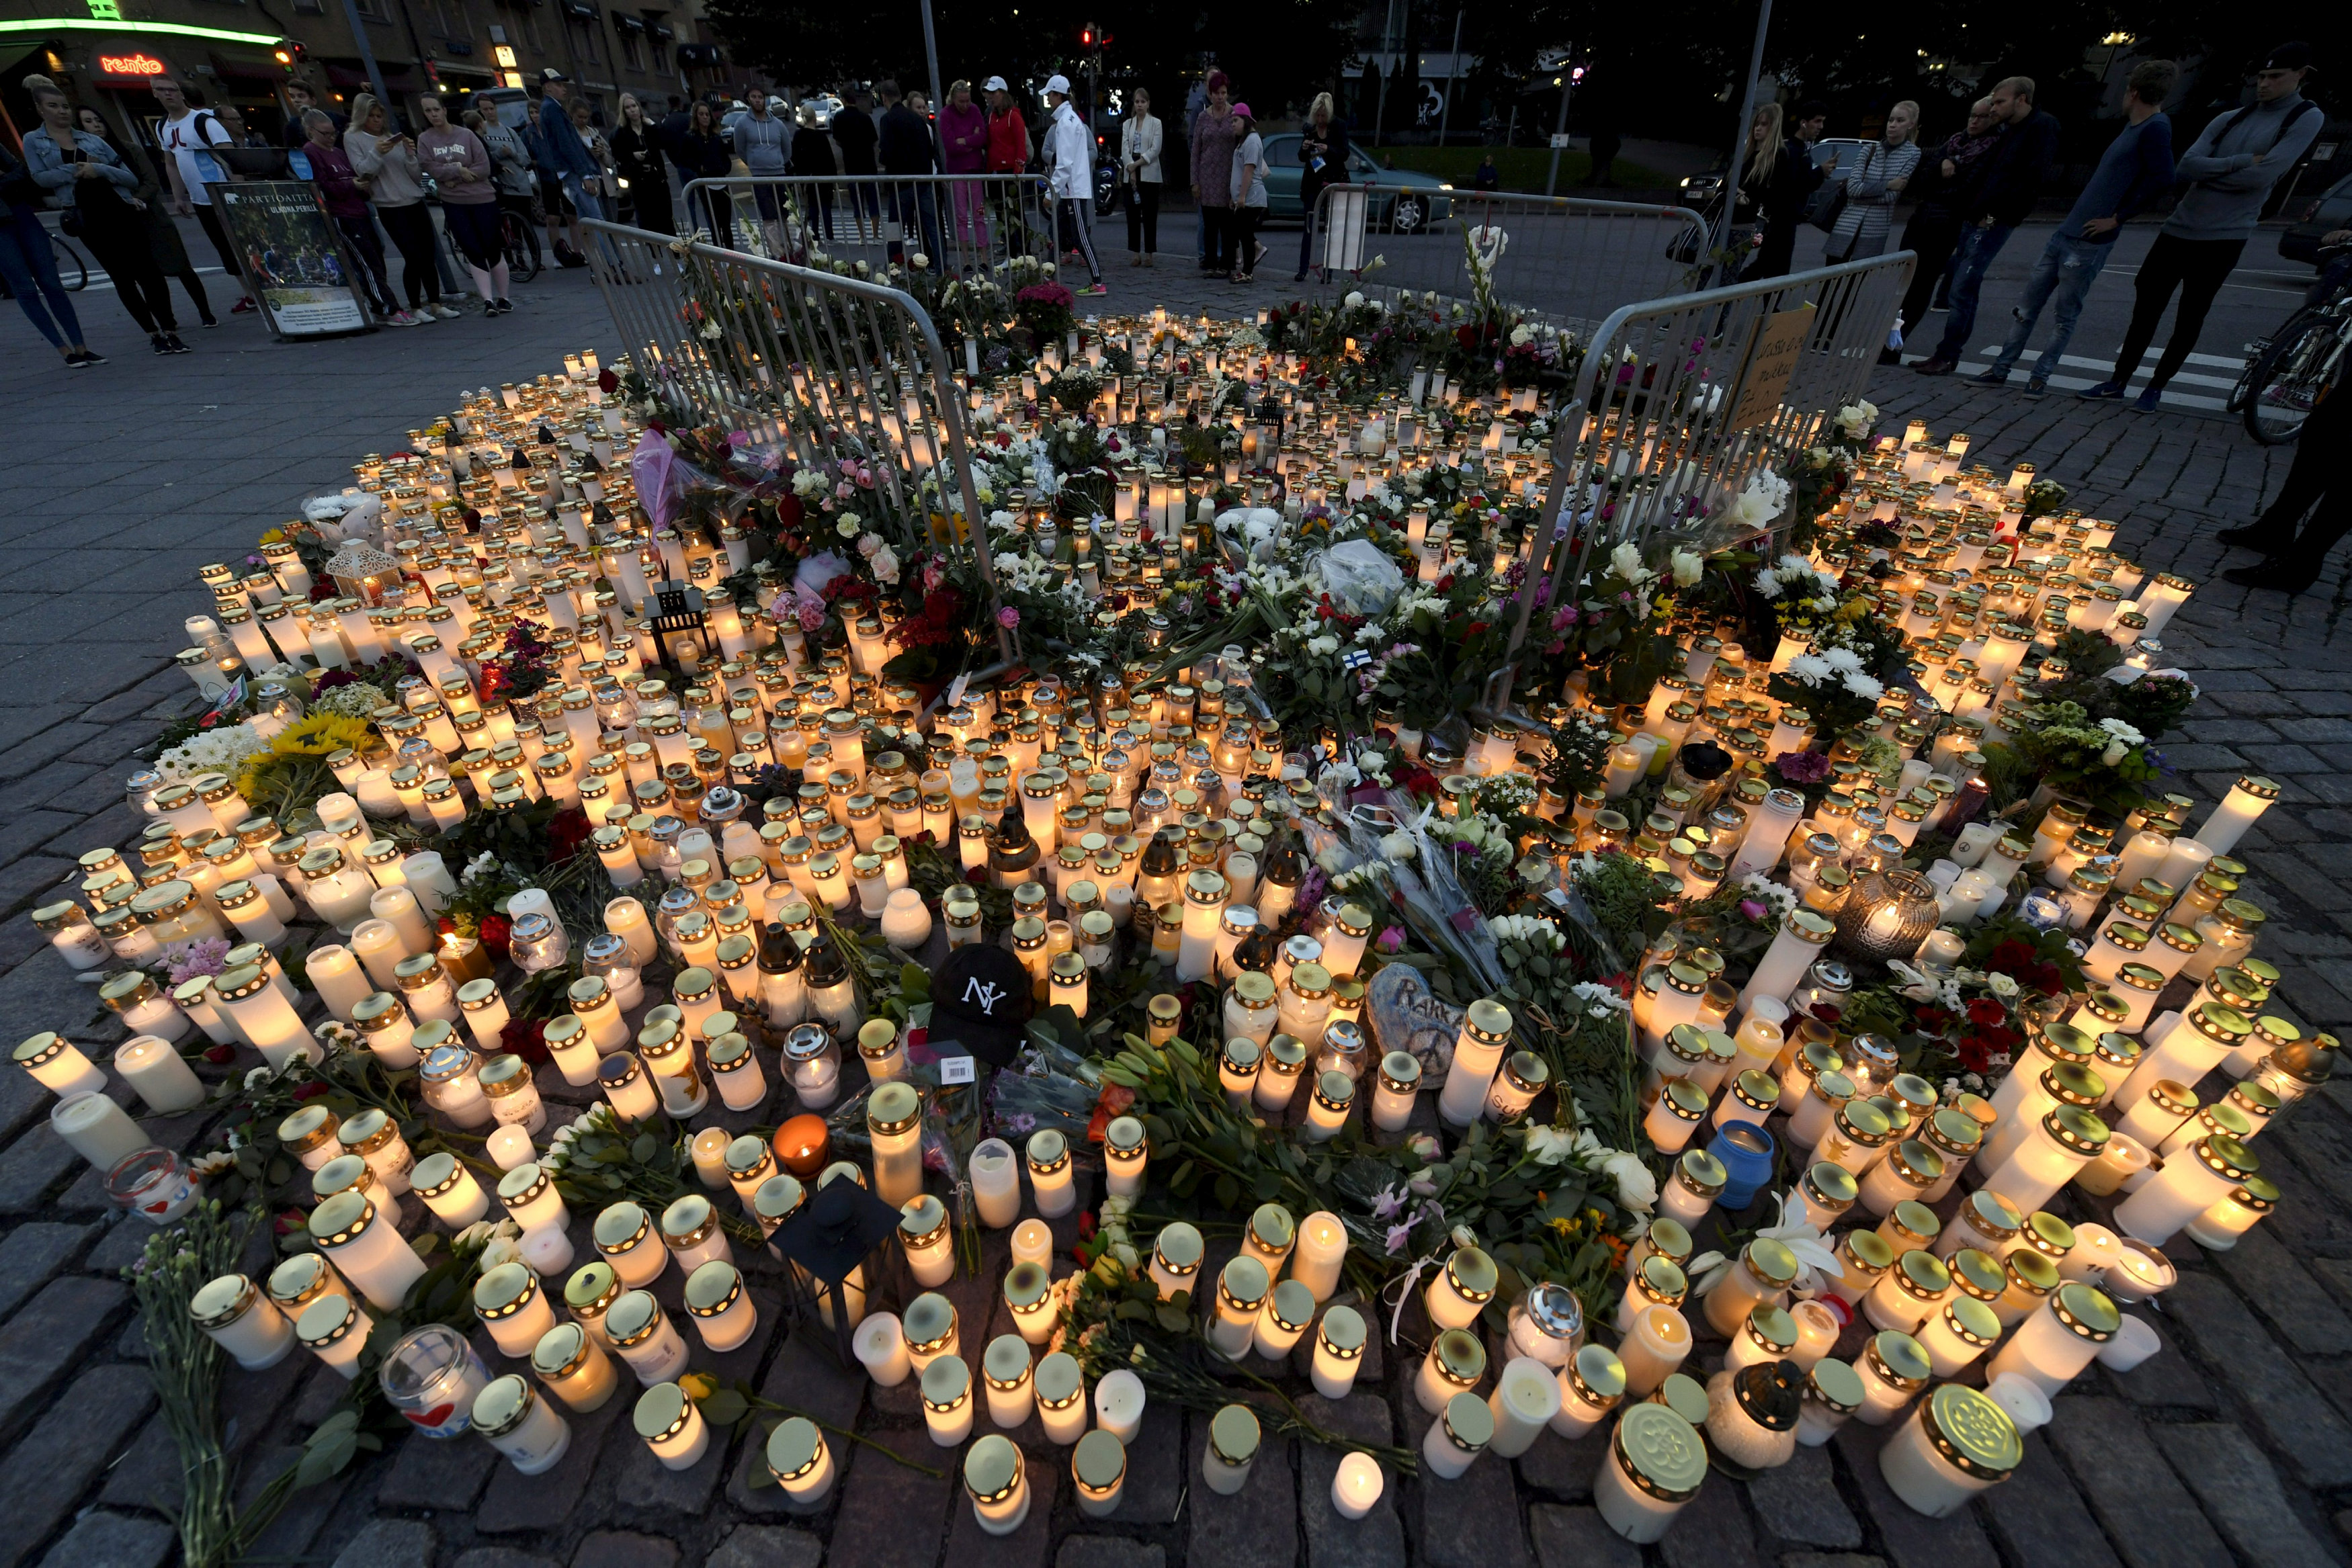 In pictures: Commemoration of Finland stabbing victims